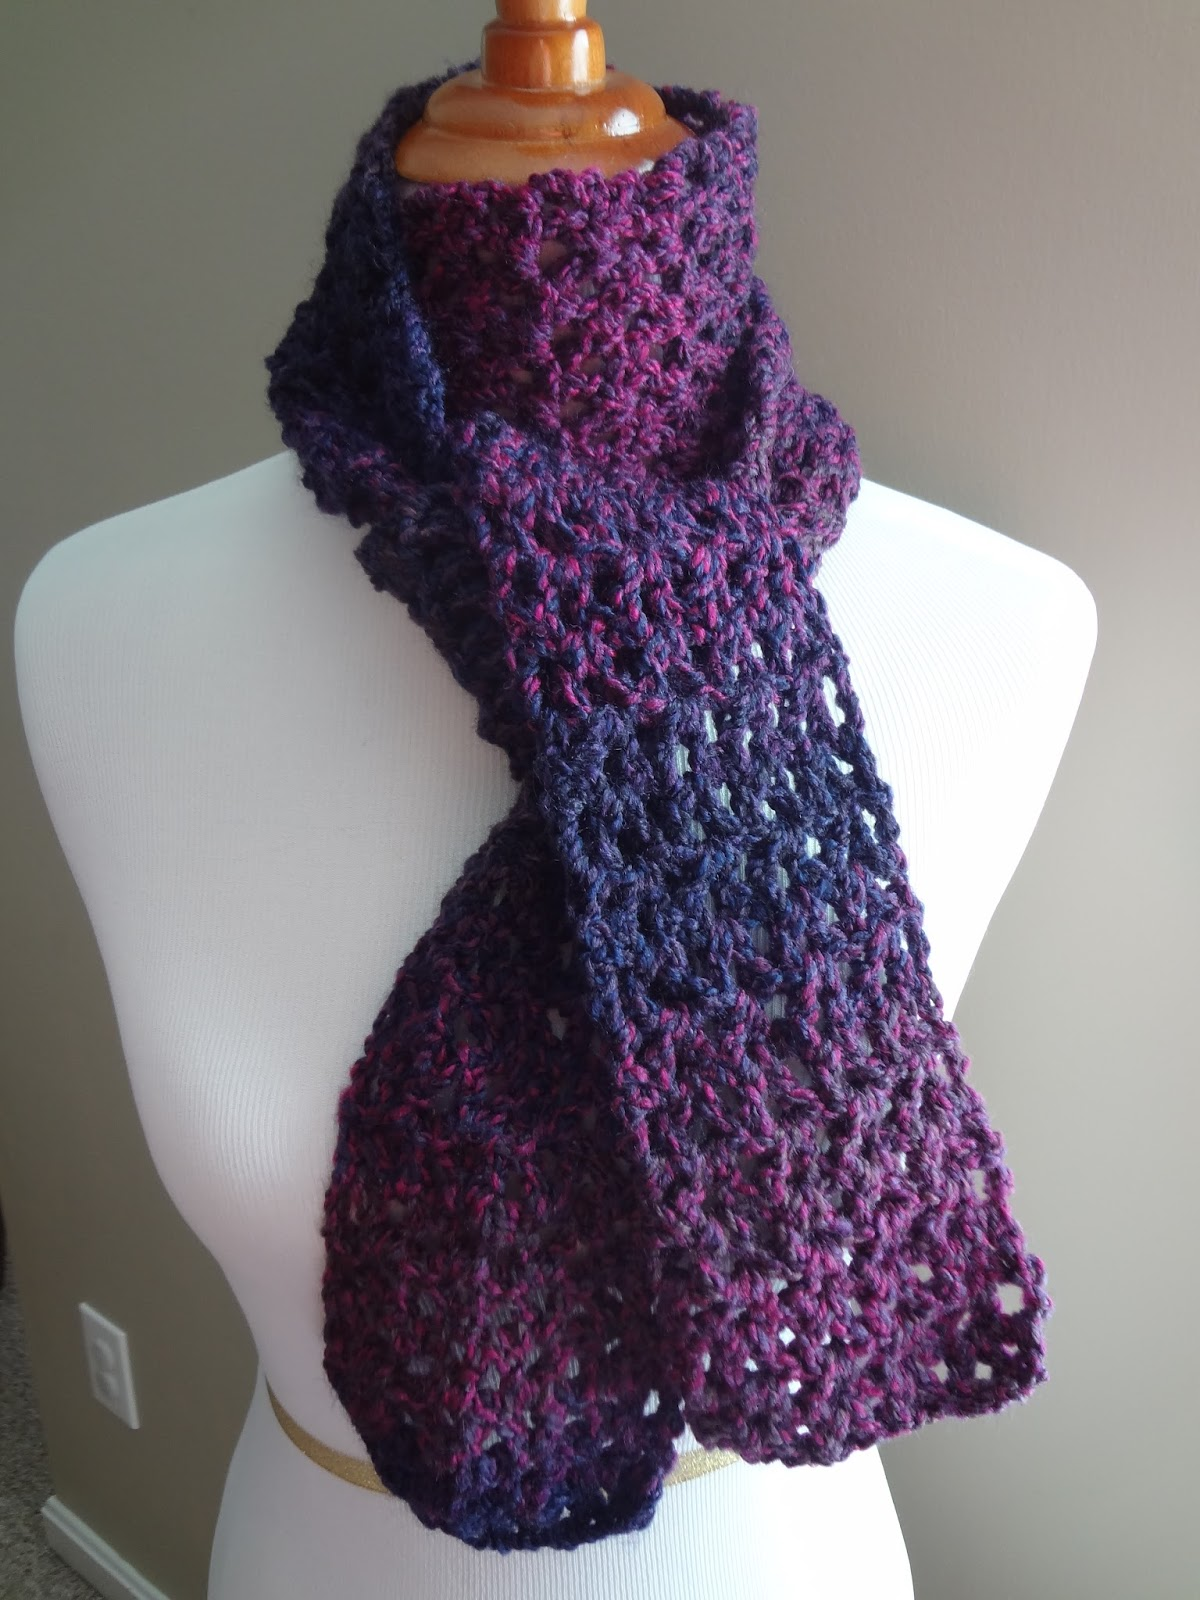 Crochet Pattern For Scarf Easy : Fiber Flux: Free Crochet Pattern...Blueberry Pie Scarf!